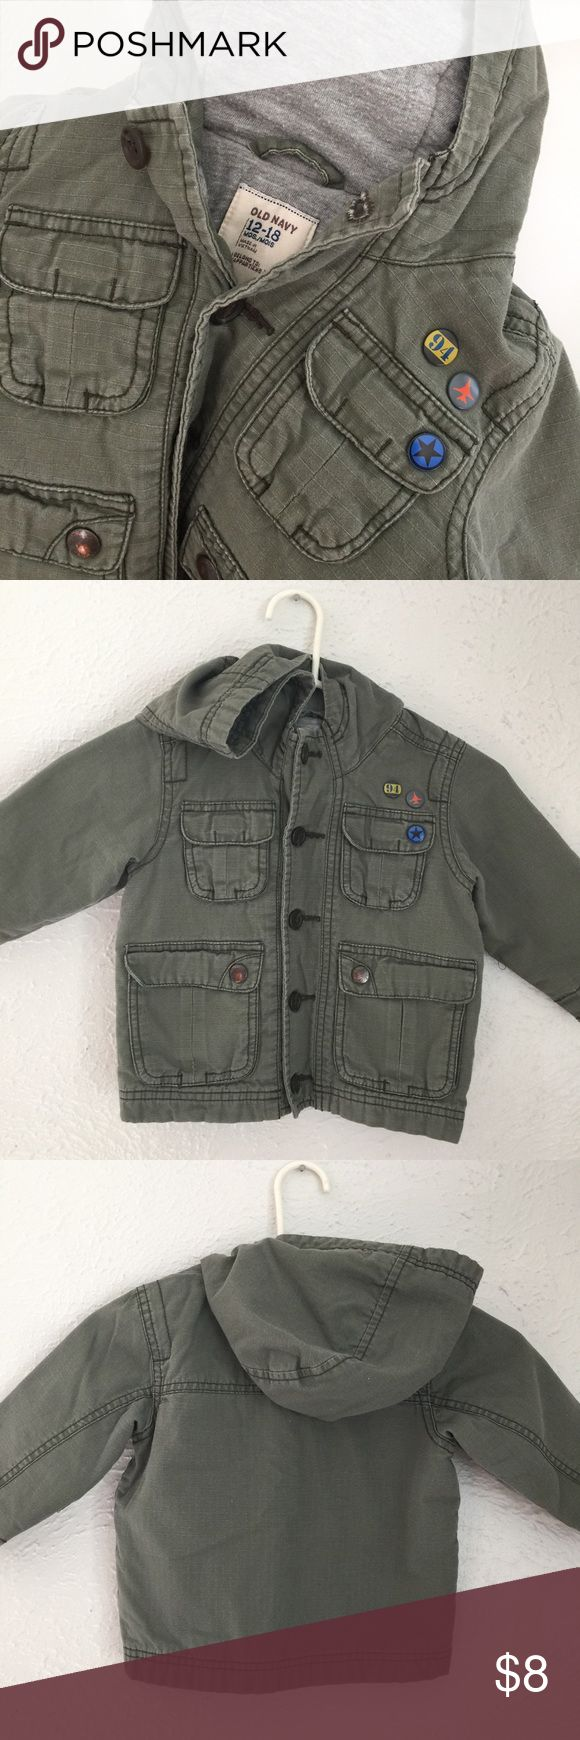 """ON ARMY fatigue perfect for fall jacket w/ """"pins"""" ARMY military fatigue olive green pinned up - perfect for fall jacket -field coat w/ hood - preloved condition - punk rock vibes for your little <3 Old Navy Jackets & Coats"""